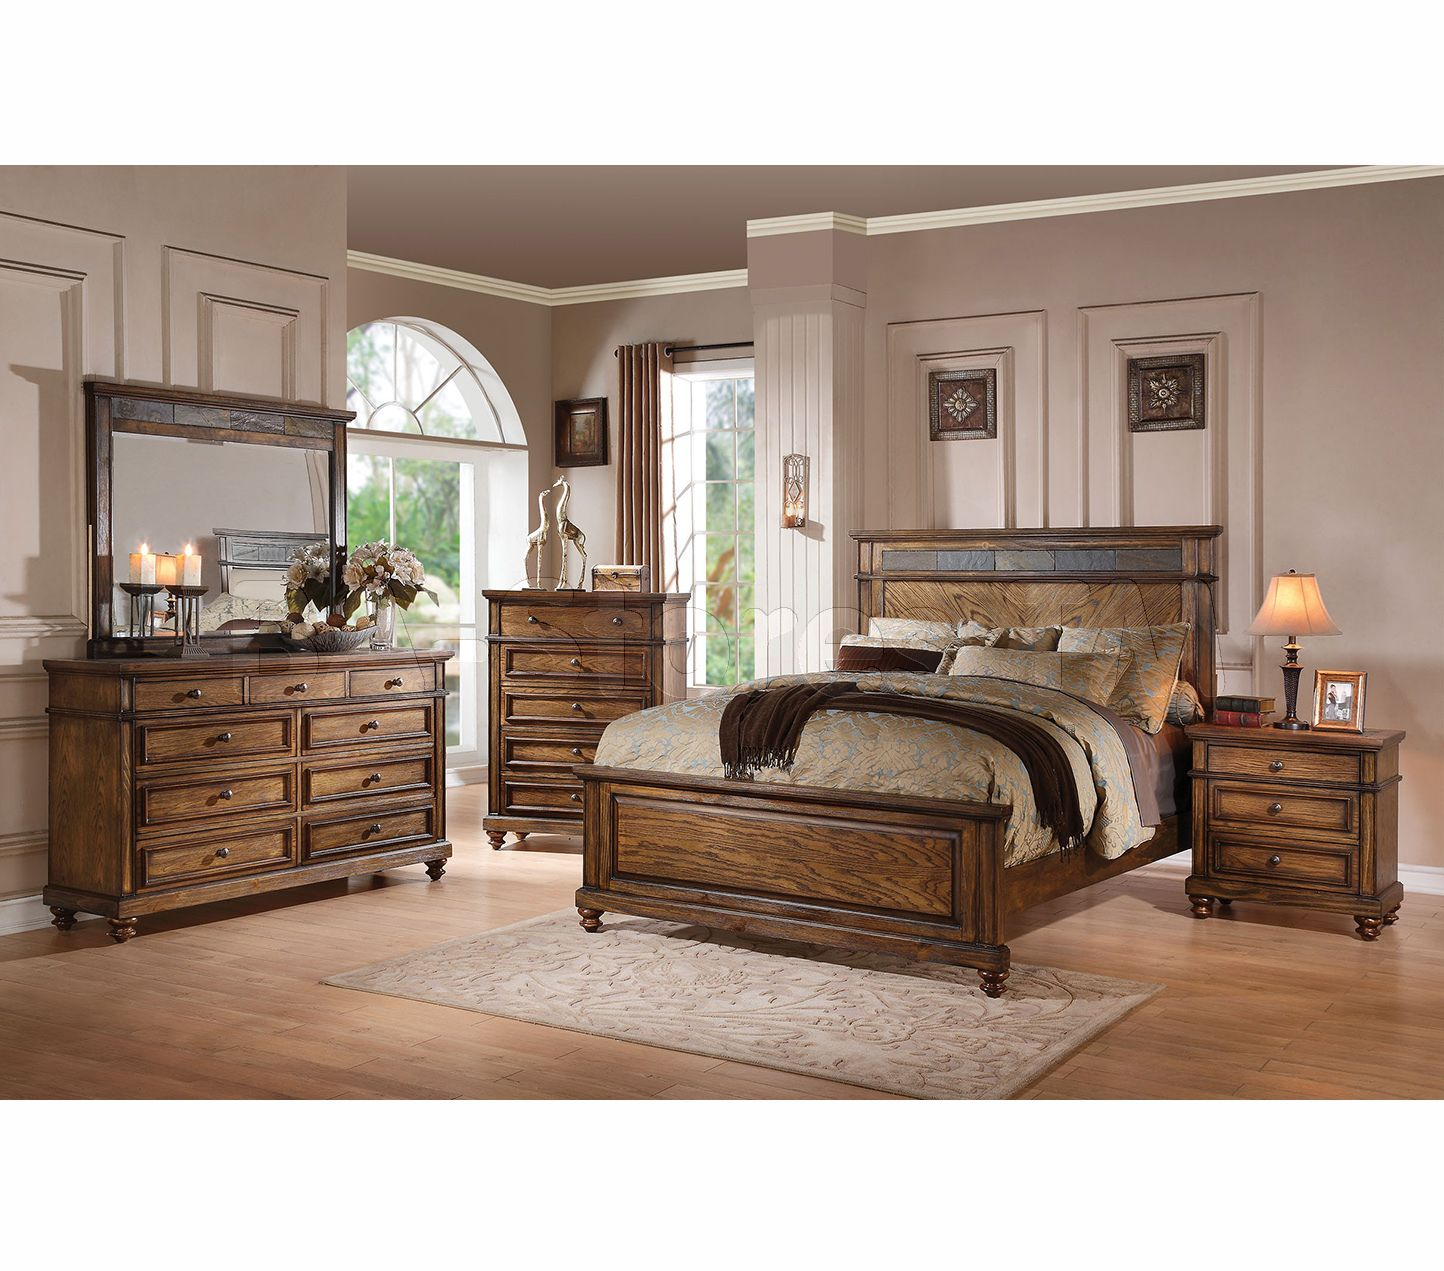 Arielle Bedroom Set By Acme Furniture Bedroom Sets By Acme  # Muebles Ponderosa